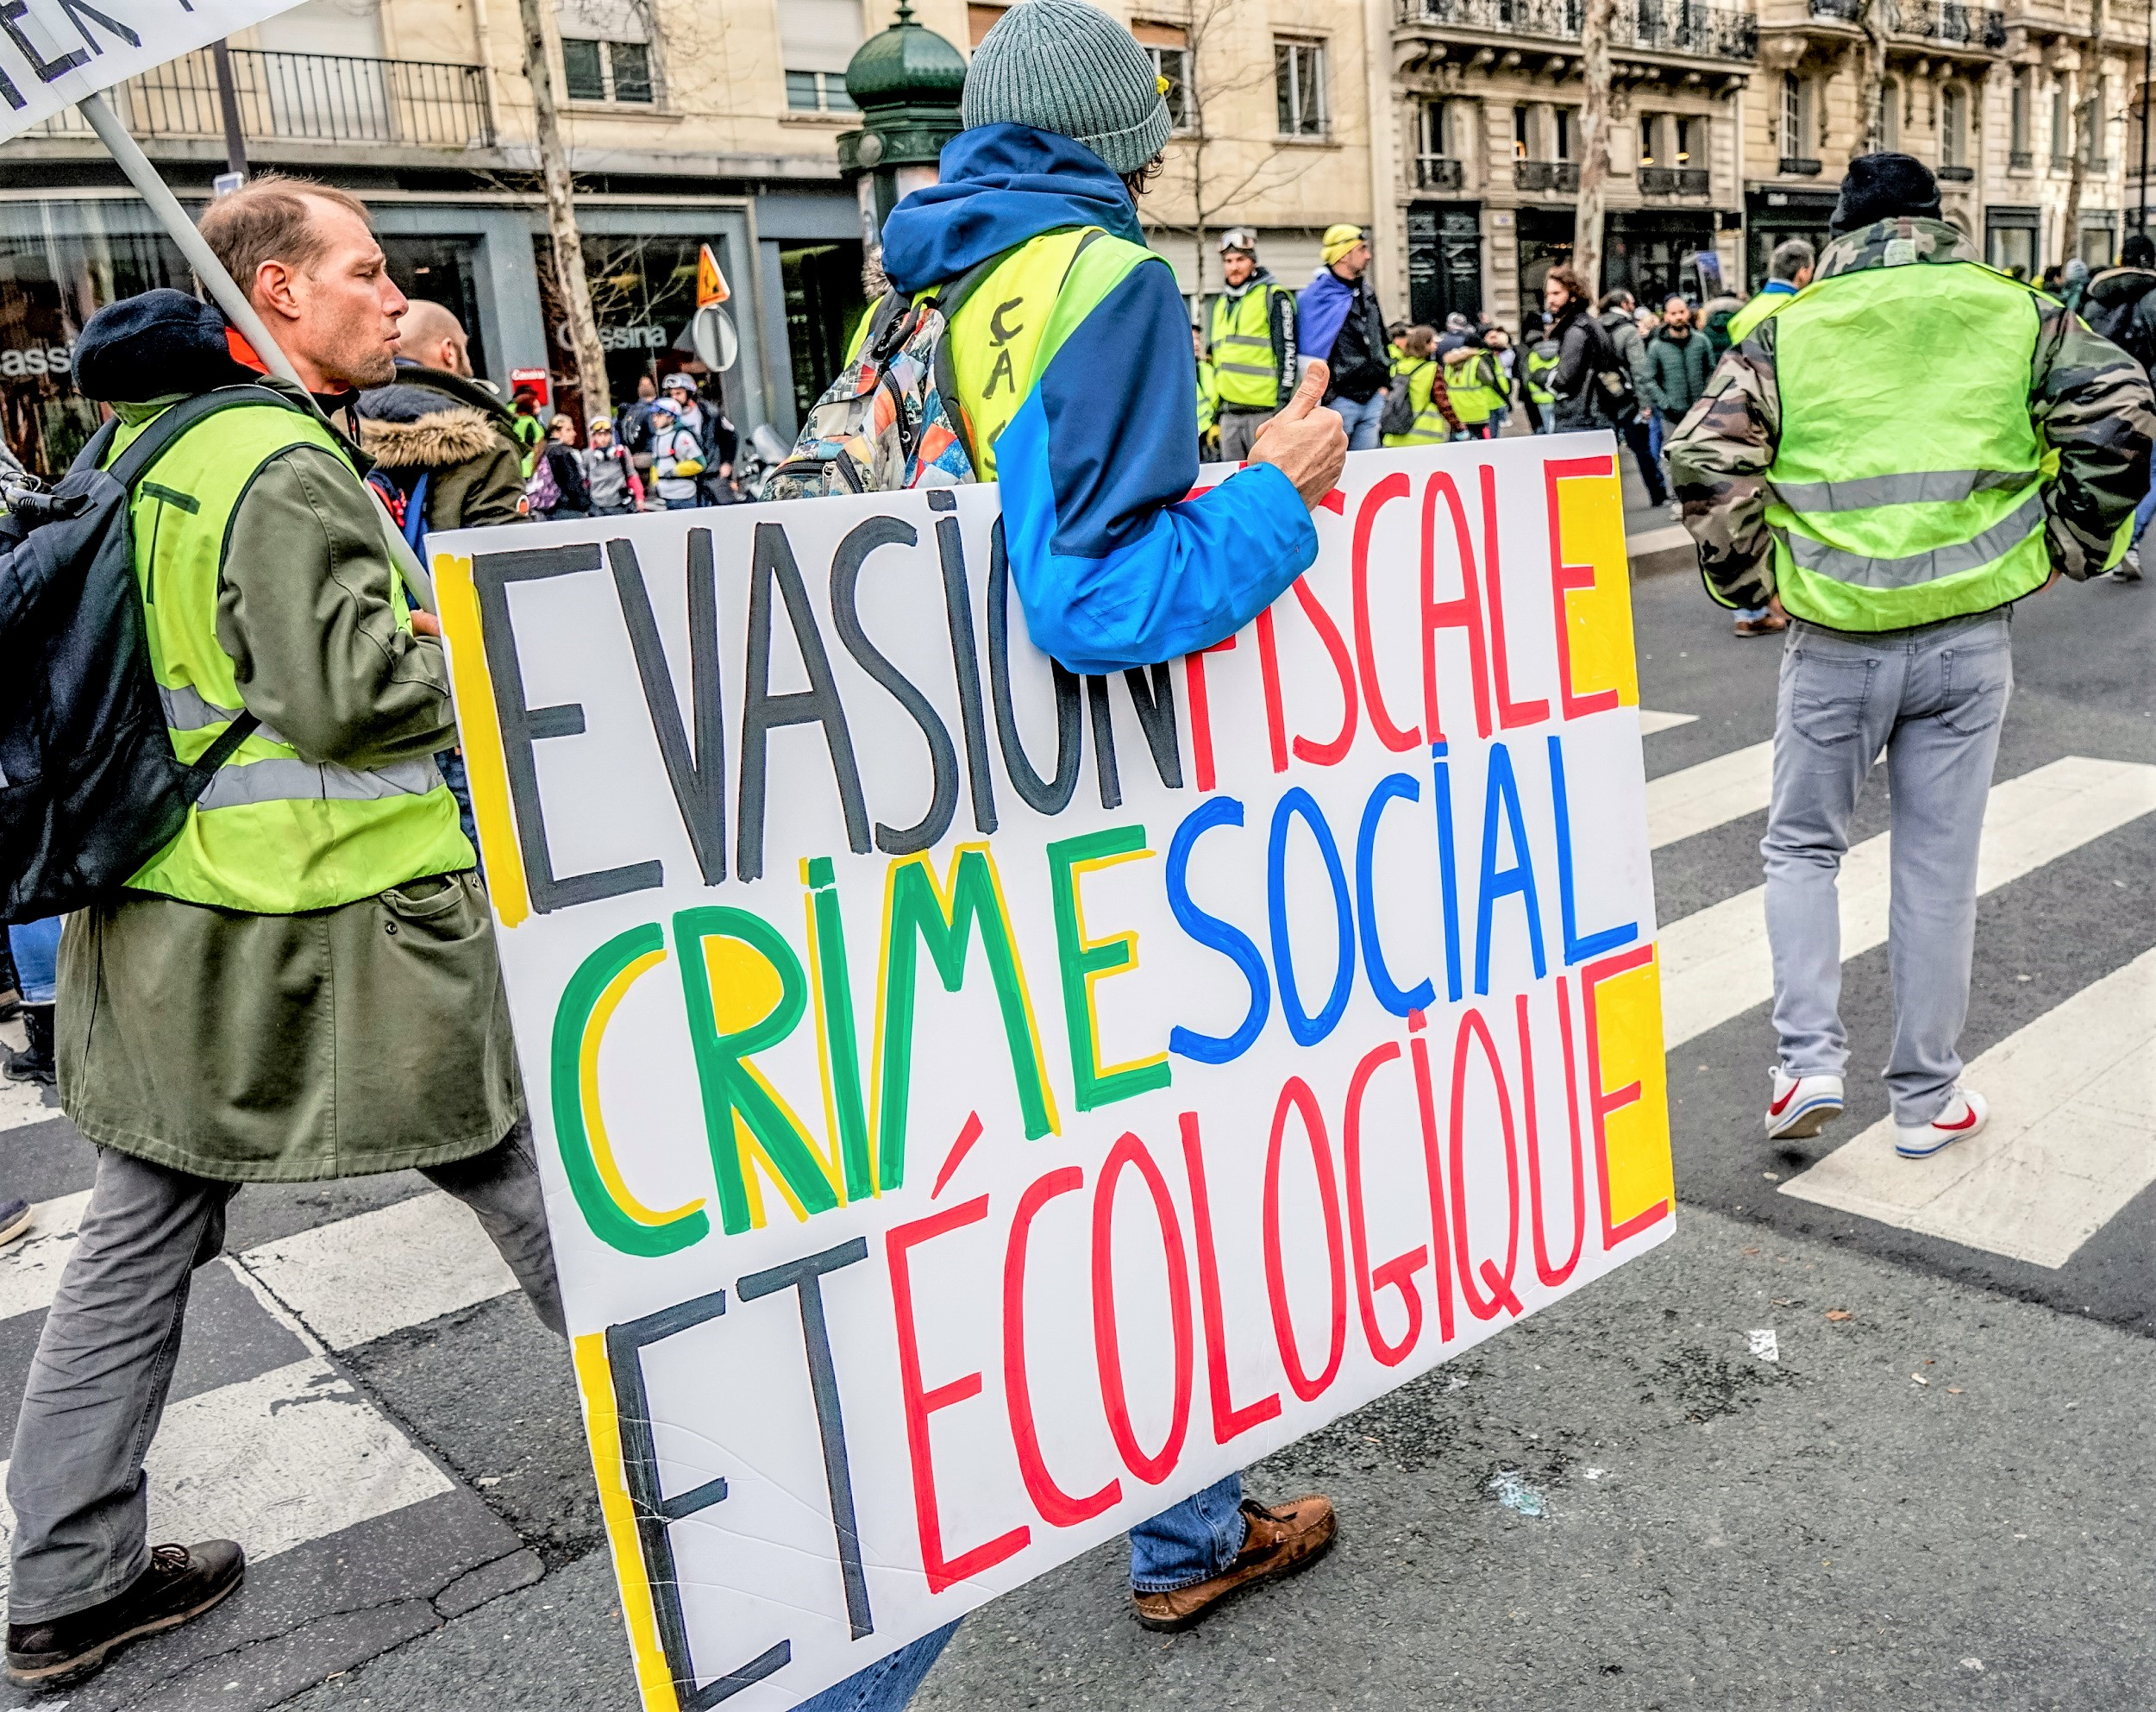 Thousands of yellow vests (Gilets Jaunes) protests in Paris calling for lower fuel taxes, reintroduction of the solidarity tax on wealth, a minimum wage increase, and Emmanuel Macron's resignation as President of France, 09 February 2019. By Norbu Gyachung, CC BY-SA 4.0.  via Wiki Commons.